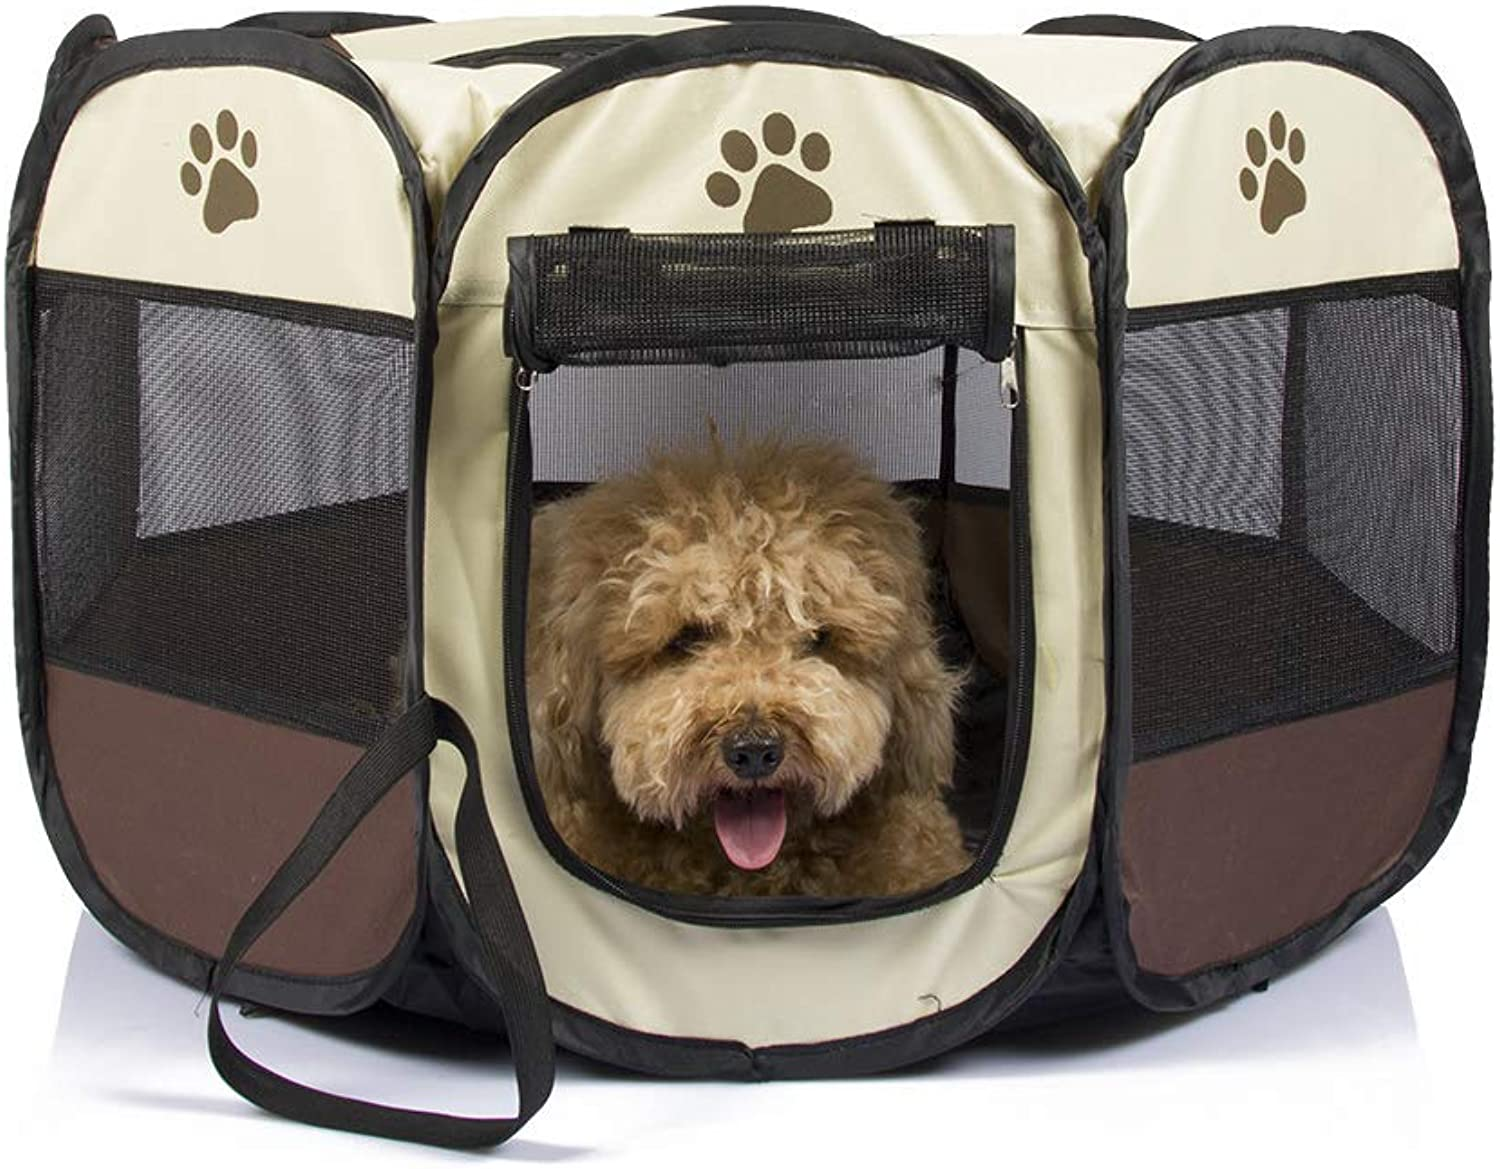 Portable Fabric Pet Play Pen,Foldable Puppy Dog Cat Rabbit Guinea Pig Run Cage Crate Kennel Tent, Brown (Diameter  90 cm, Height 60cm),Brown,S